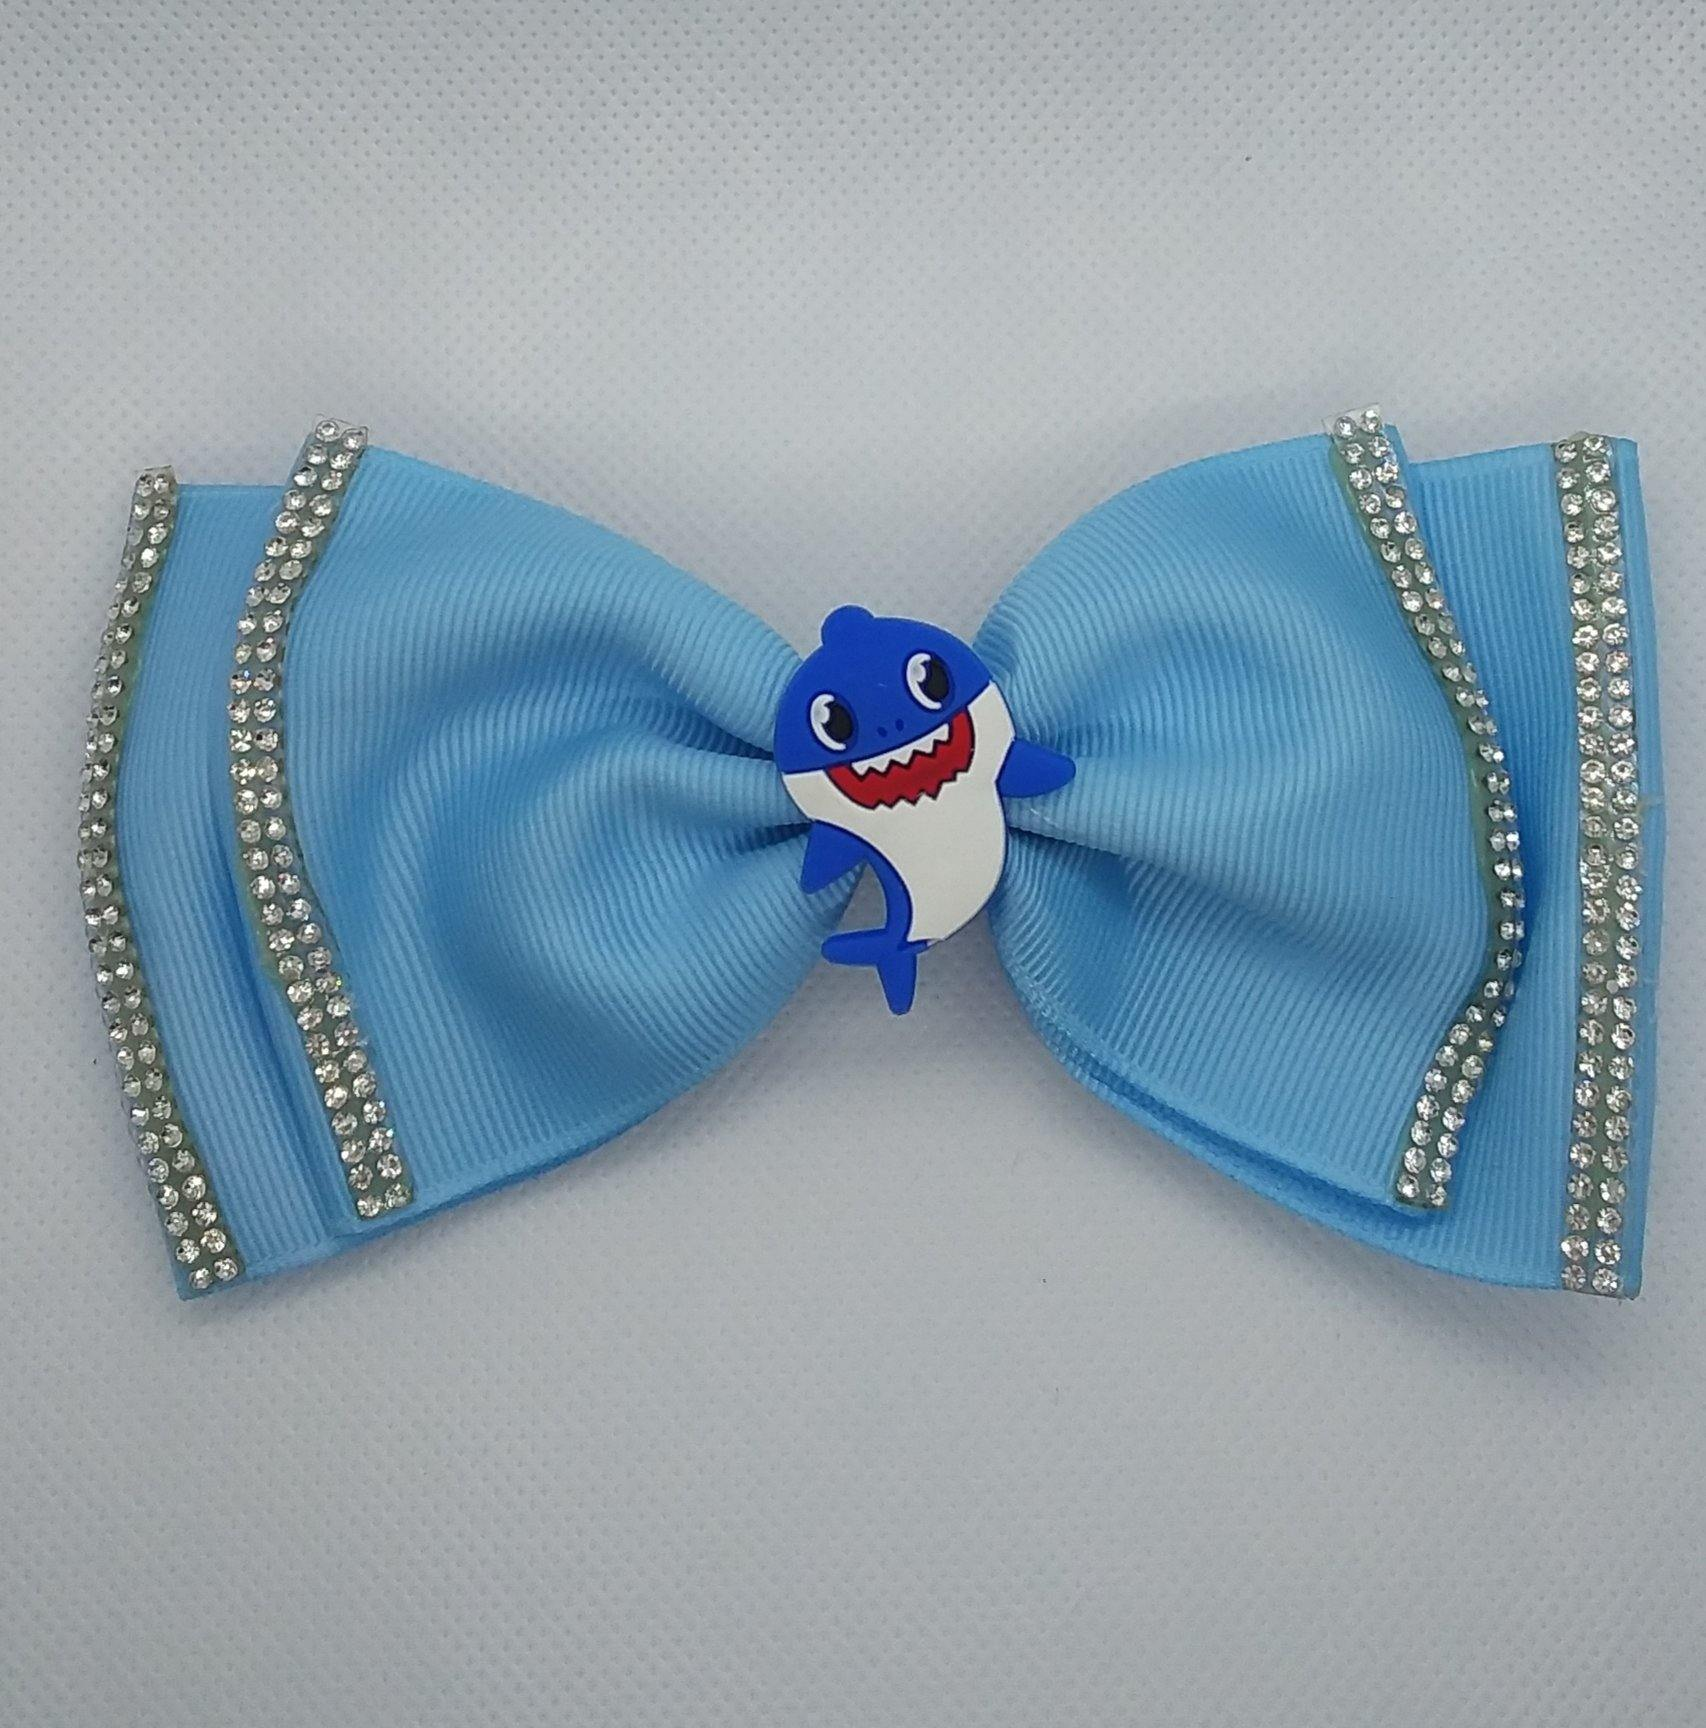 Baby Shark Bows - LilChic BabyBug Boutique